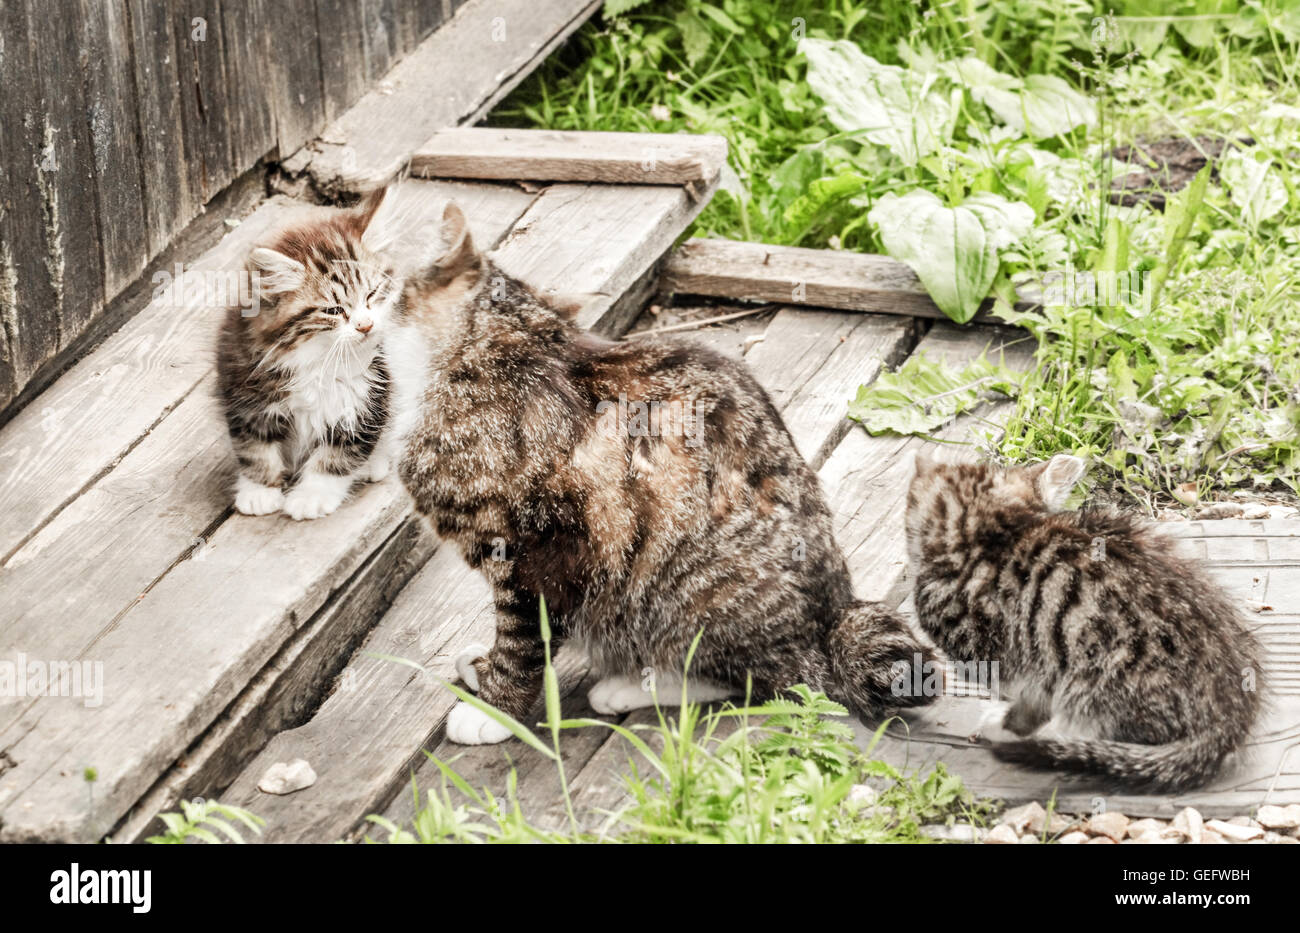 Family of cats: mother cat with kittens at summer garden - Stock Image